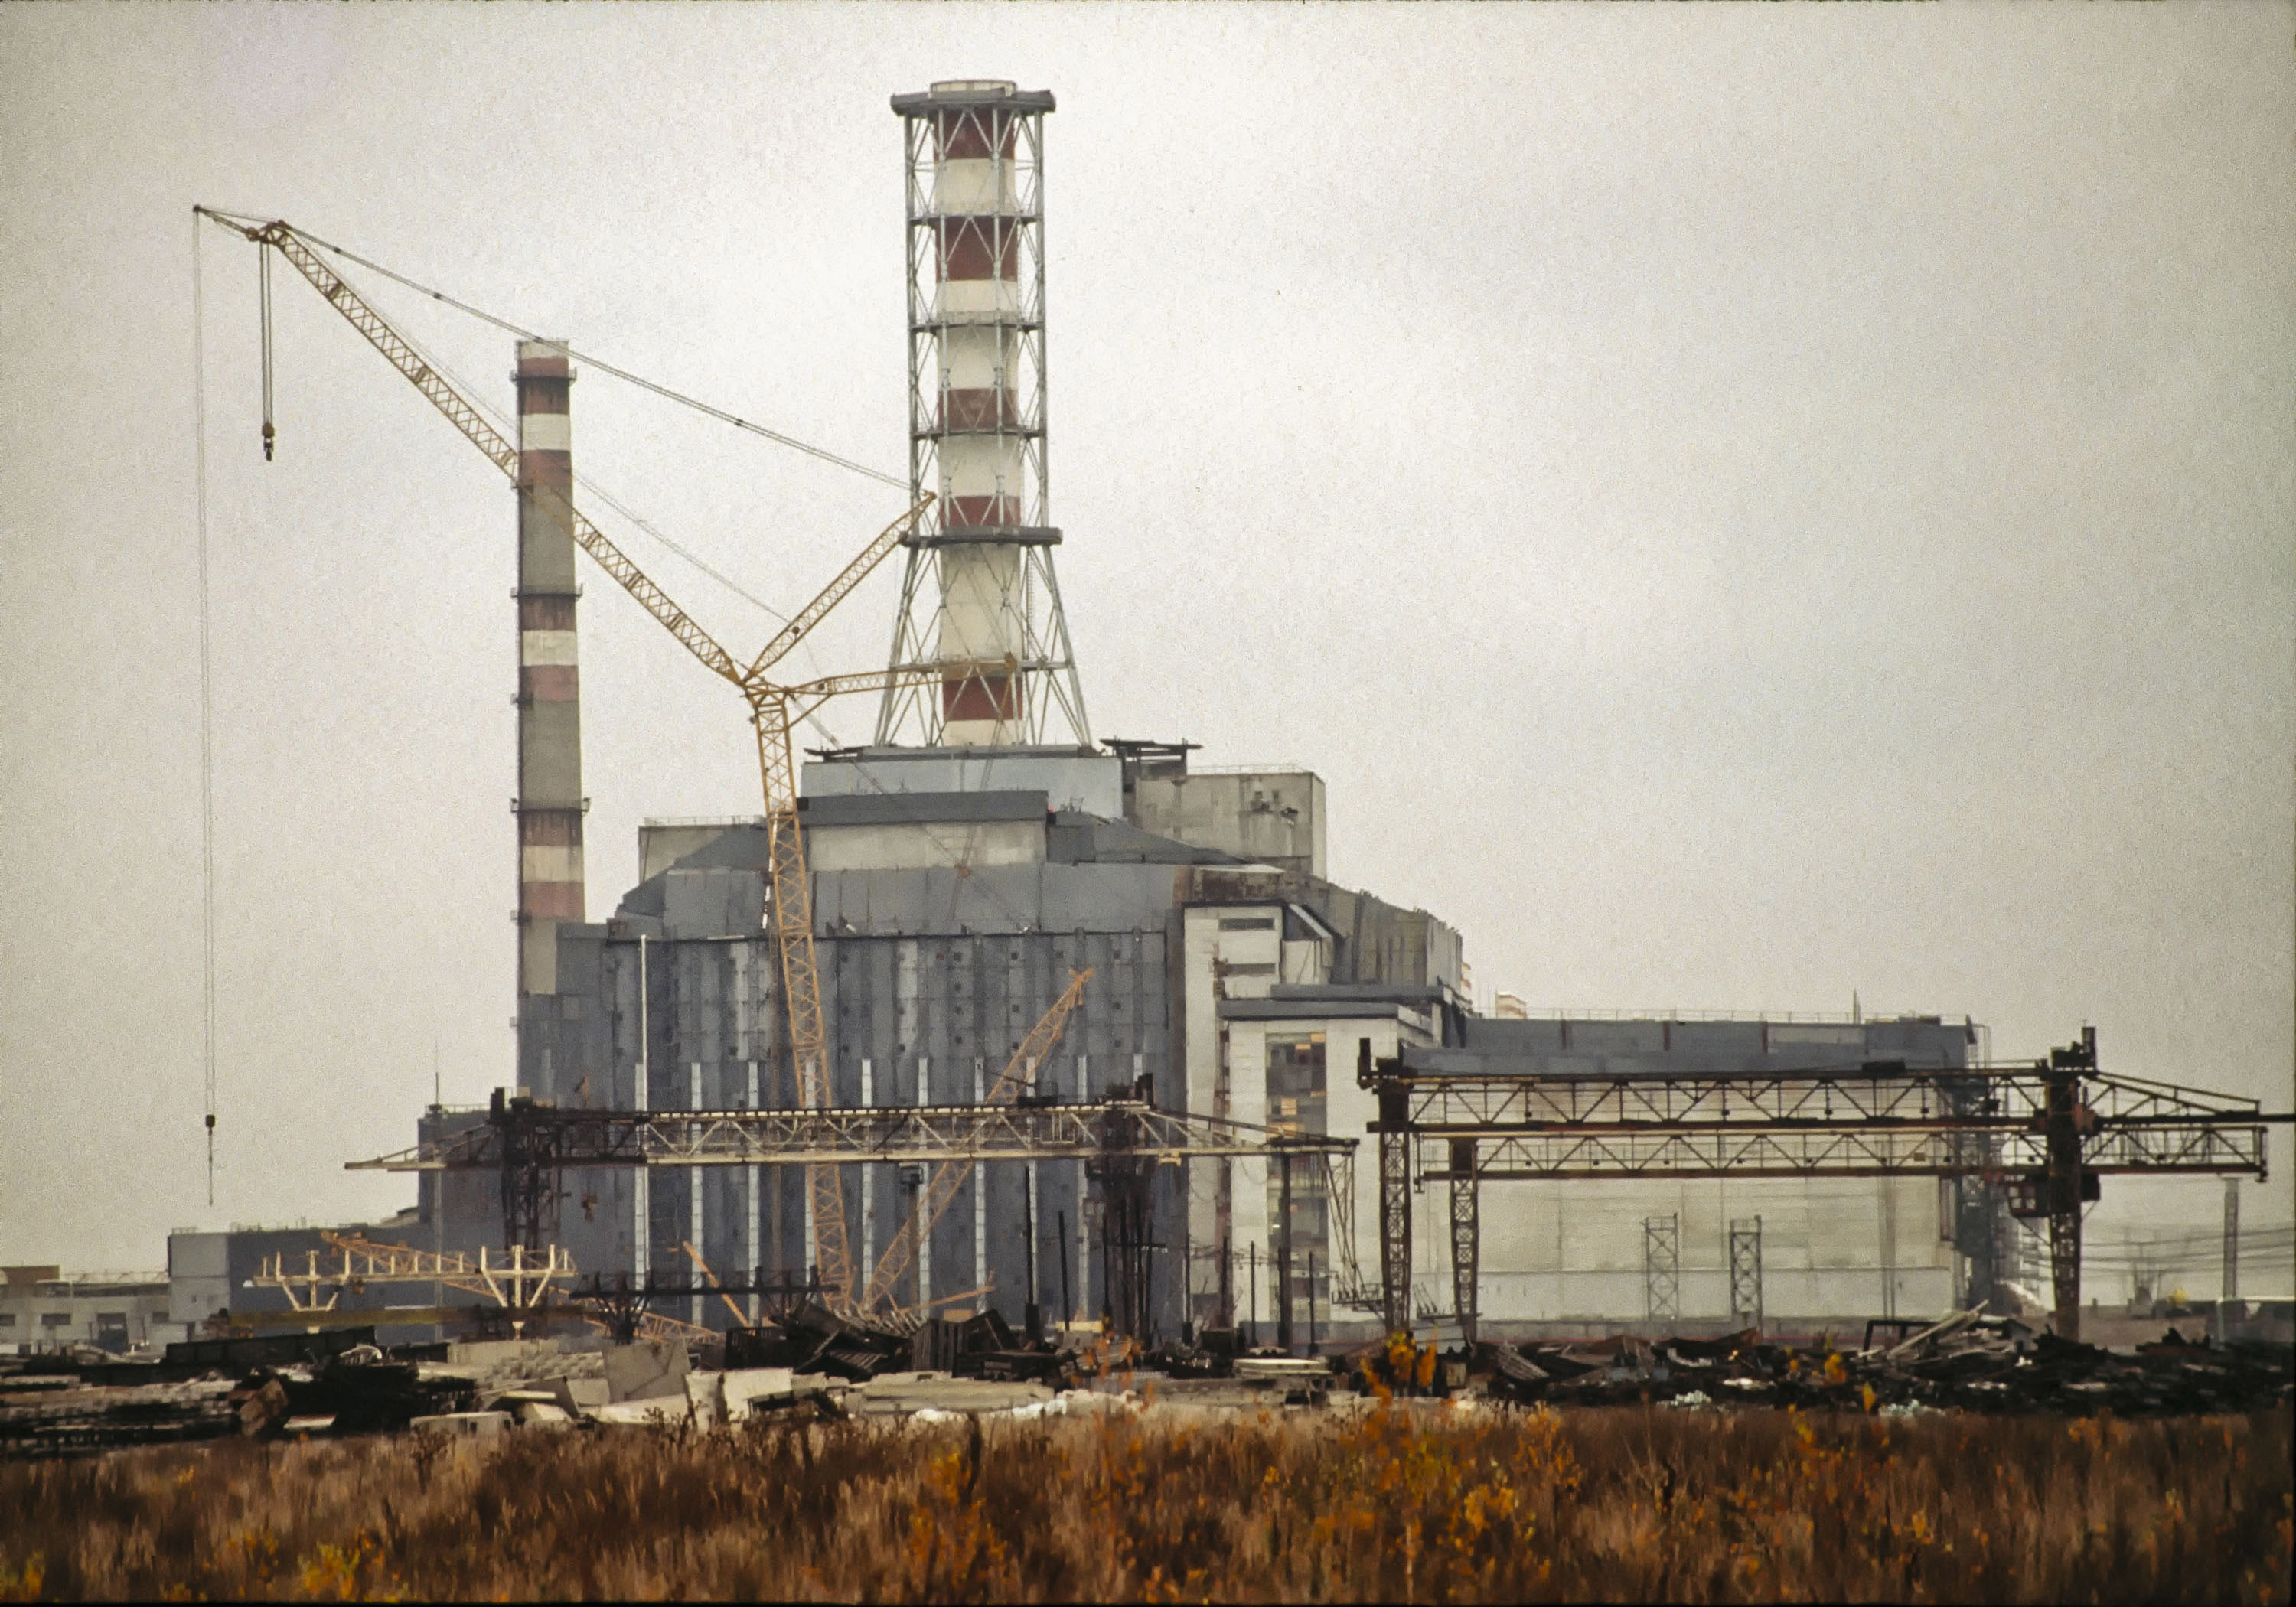 Reactor No. 4 of the Chernobyl power plant. Credit: PA